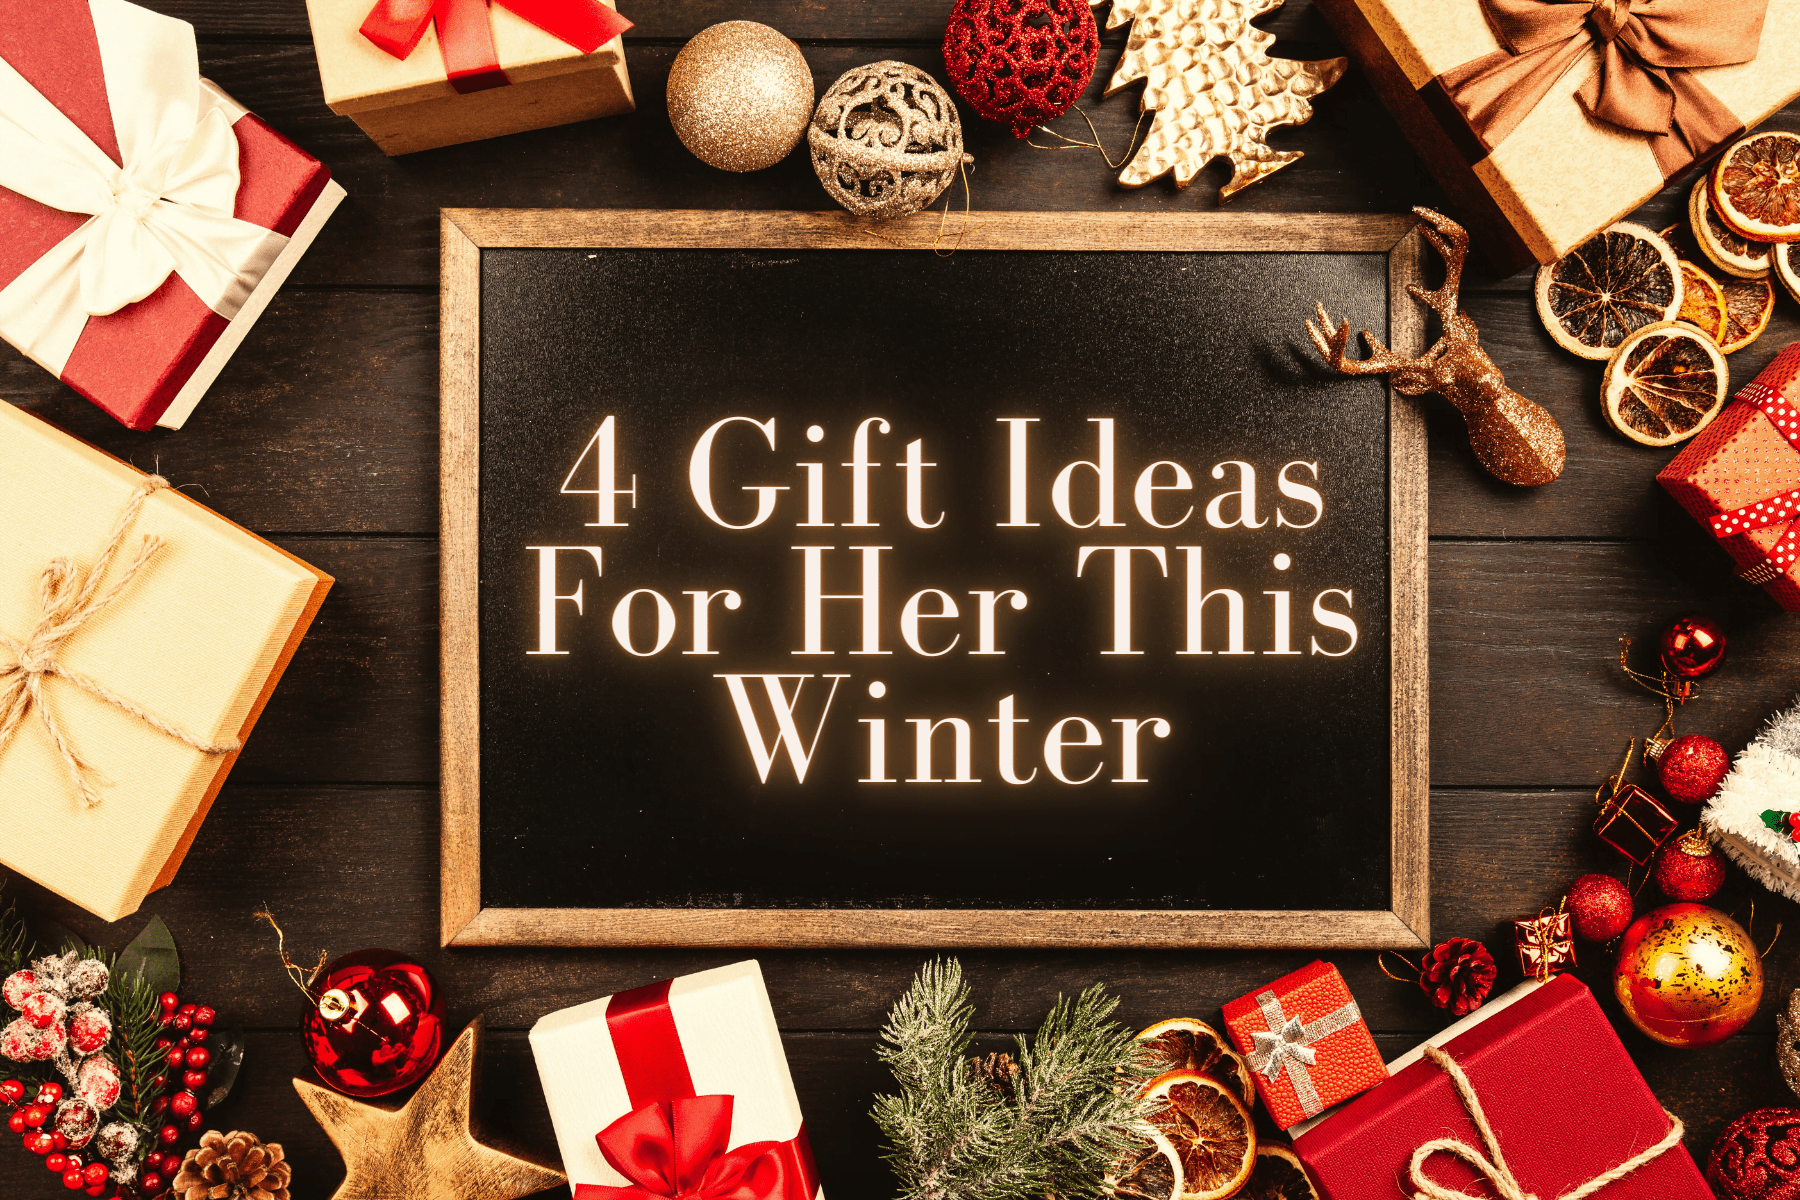 4 Gift Ideas For Her This Winter